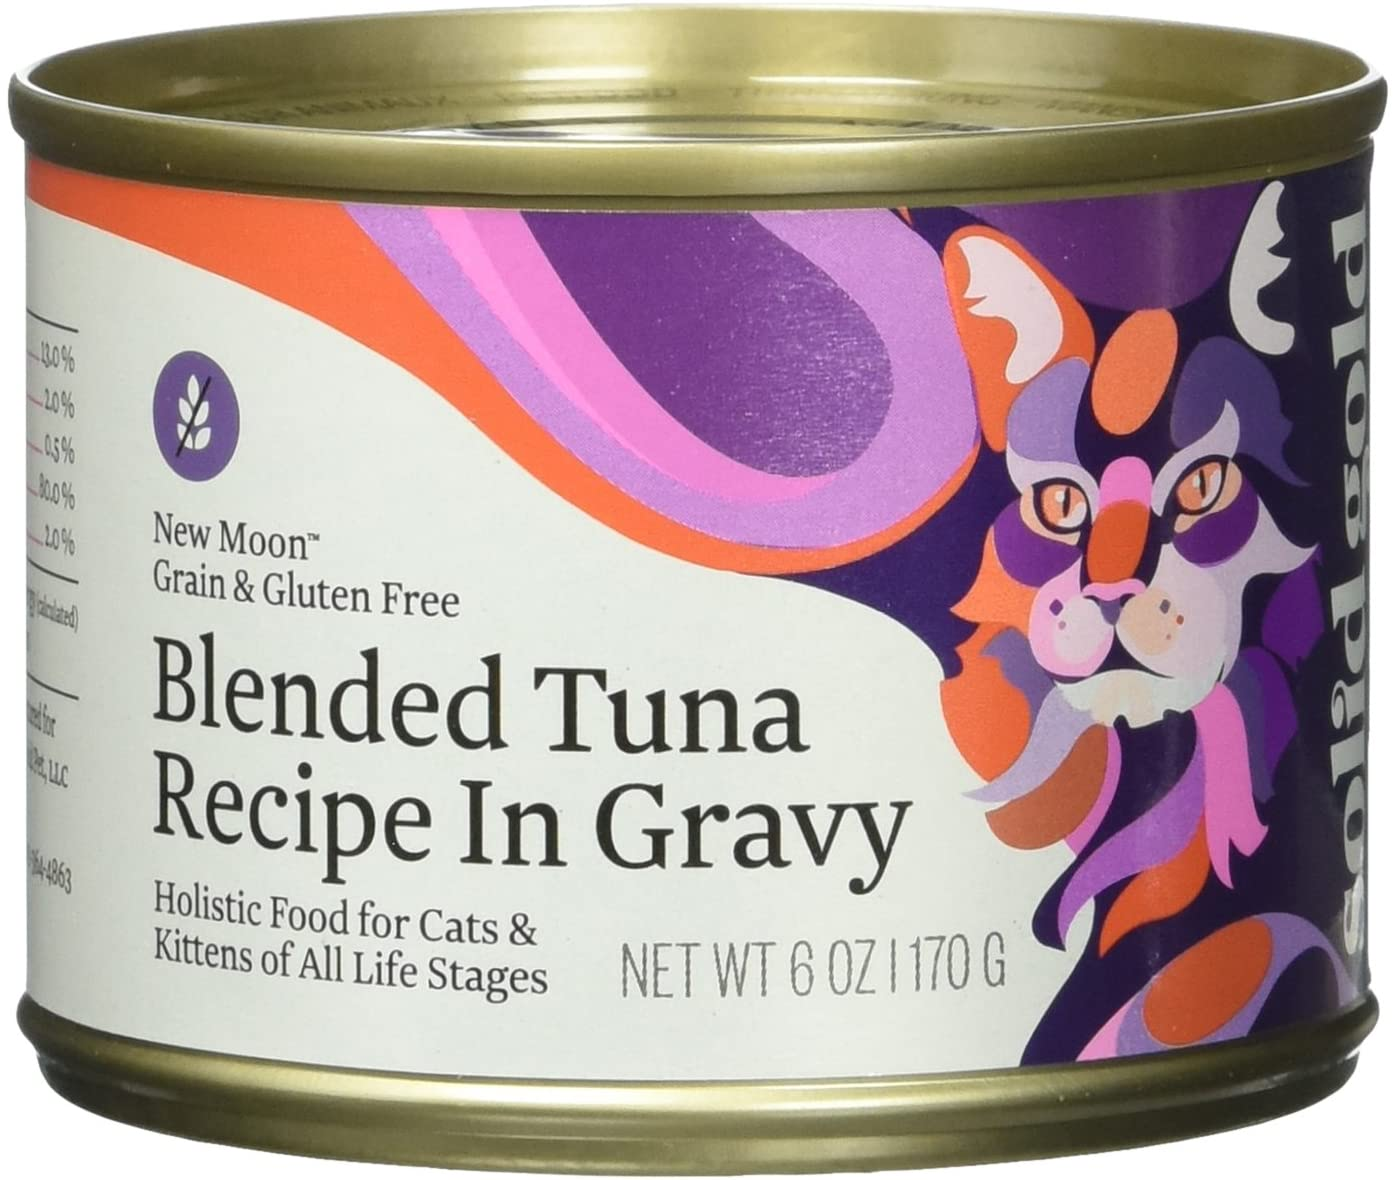 Solid Gold New Moon Holistic Wet Cat Food, Blended Tuna Recipe In Gravy, 6 Oz Can, 8 Count